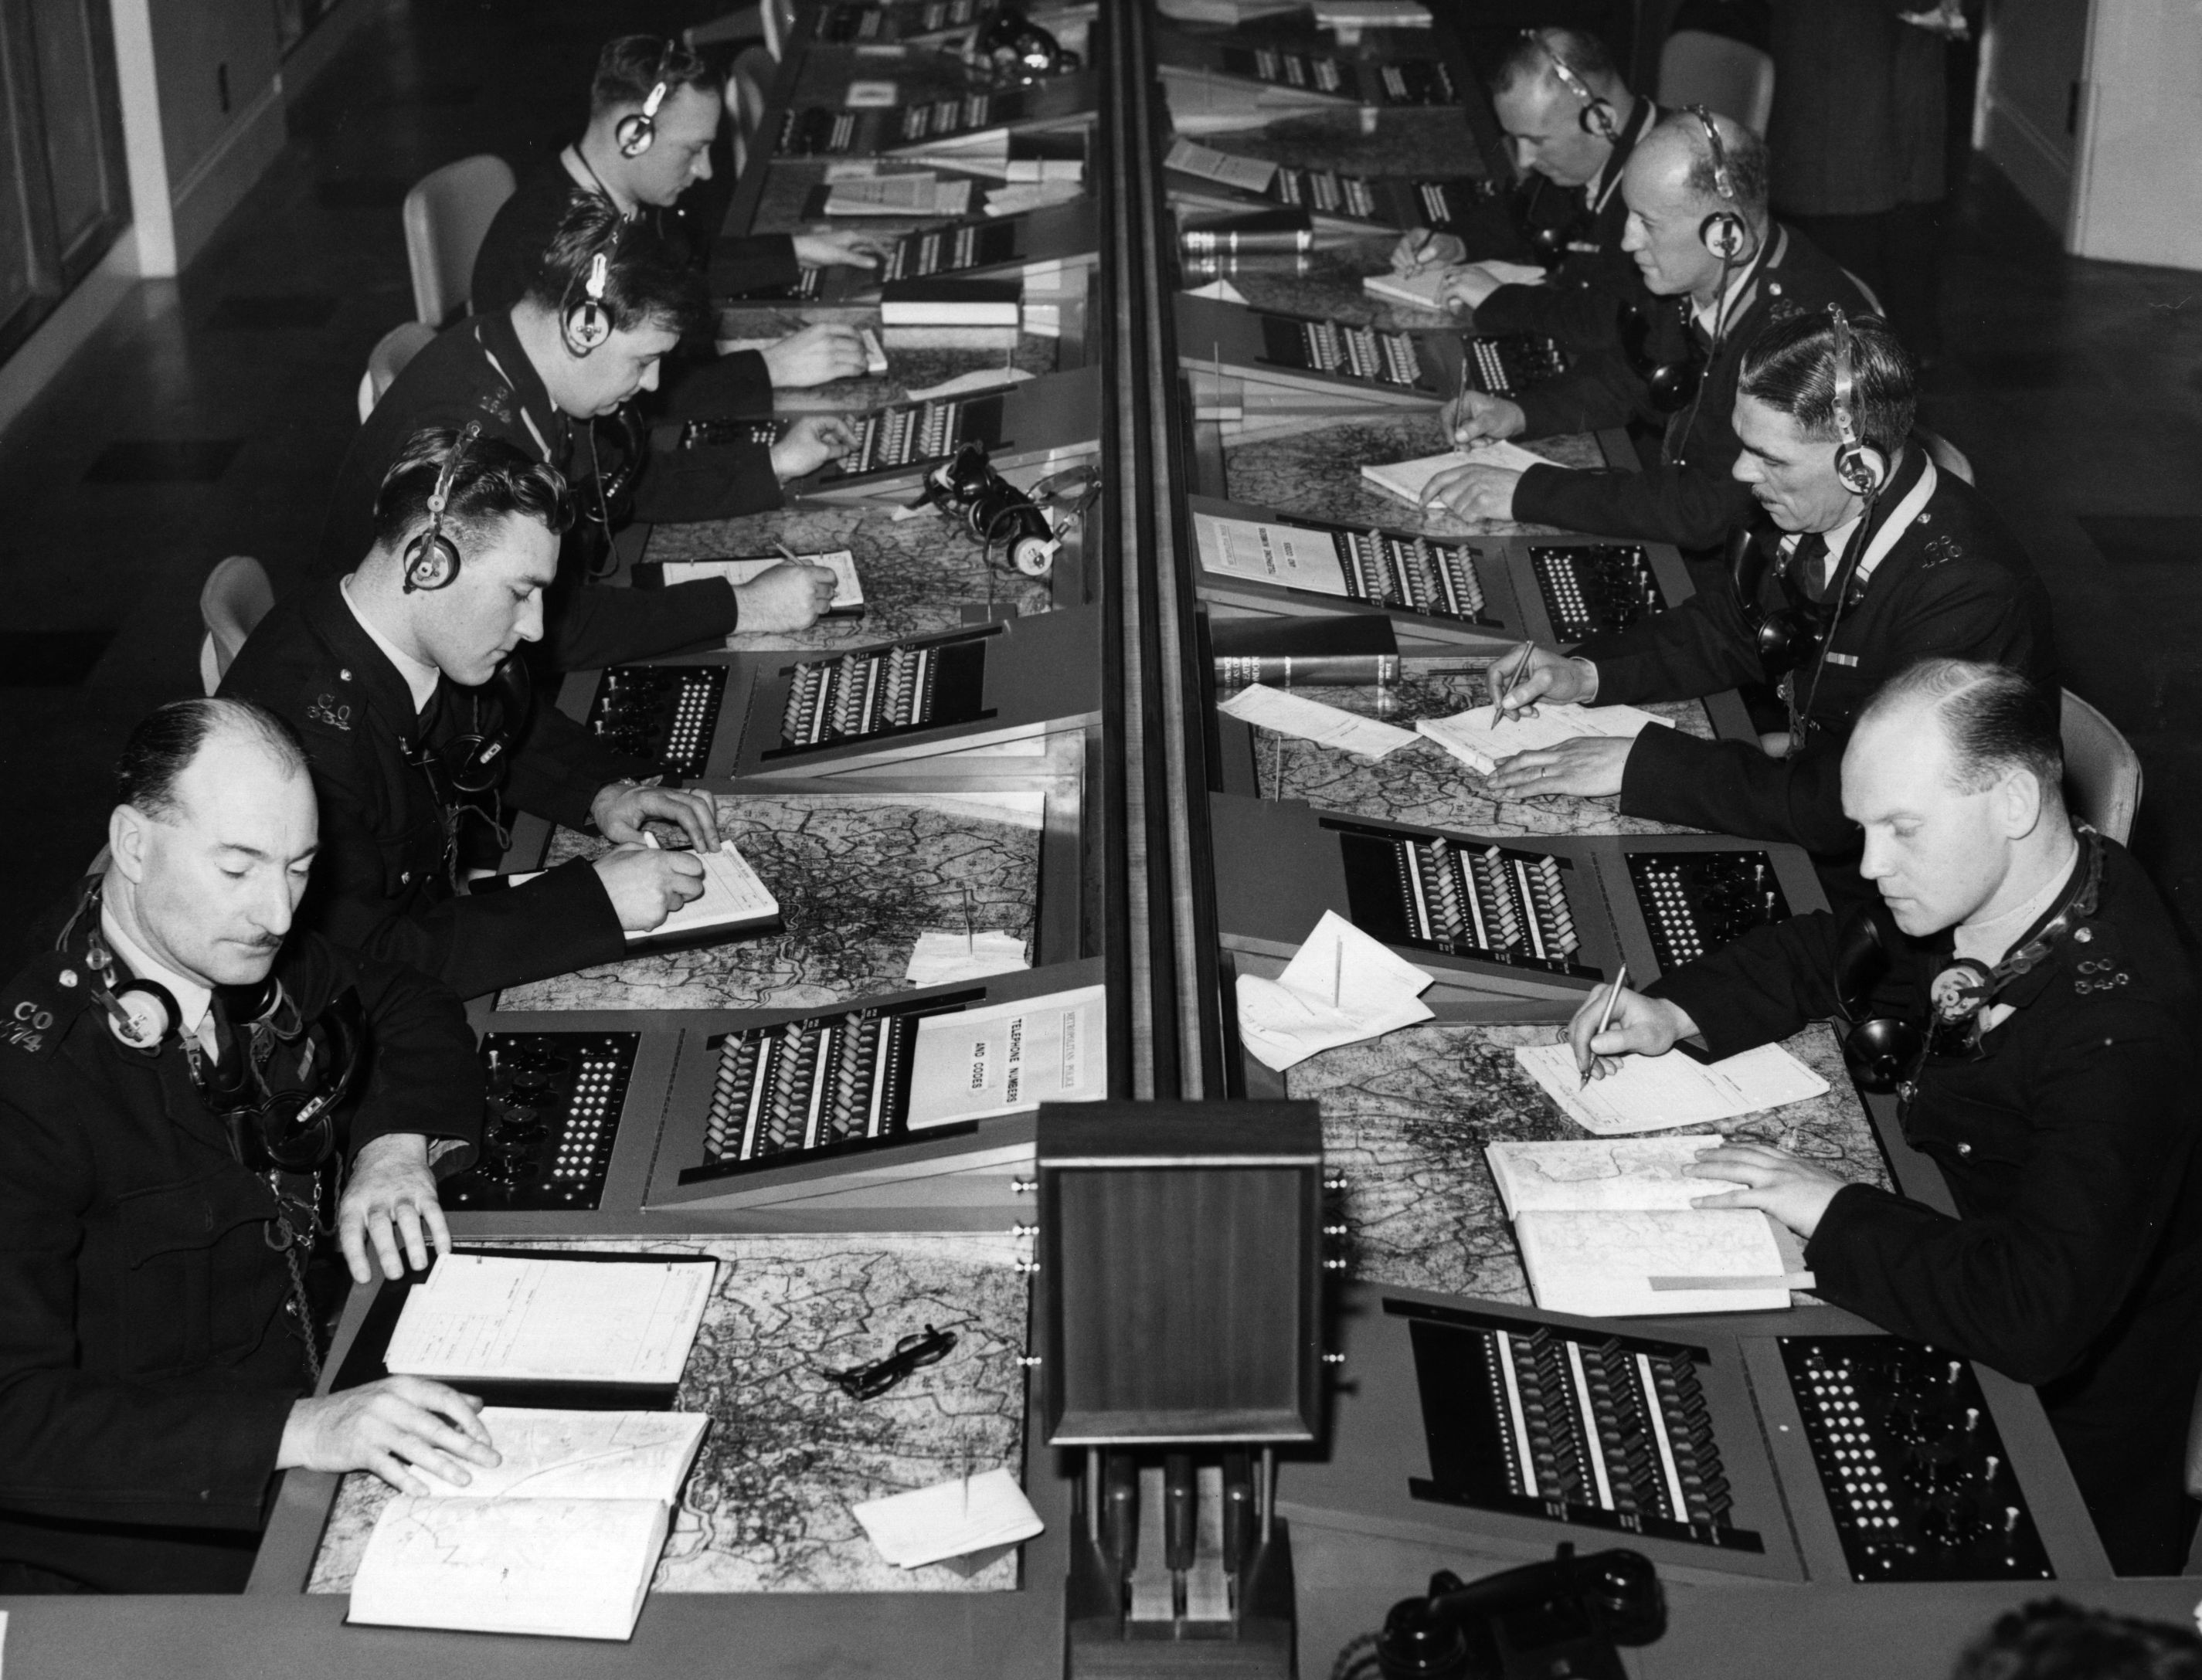 Operators dealing with emergency calls at New Scotland Yard, London, c1956. (Photo by Reg Speller/Getty Images)